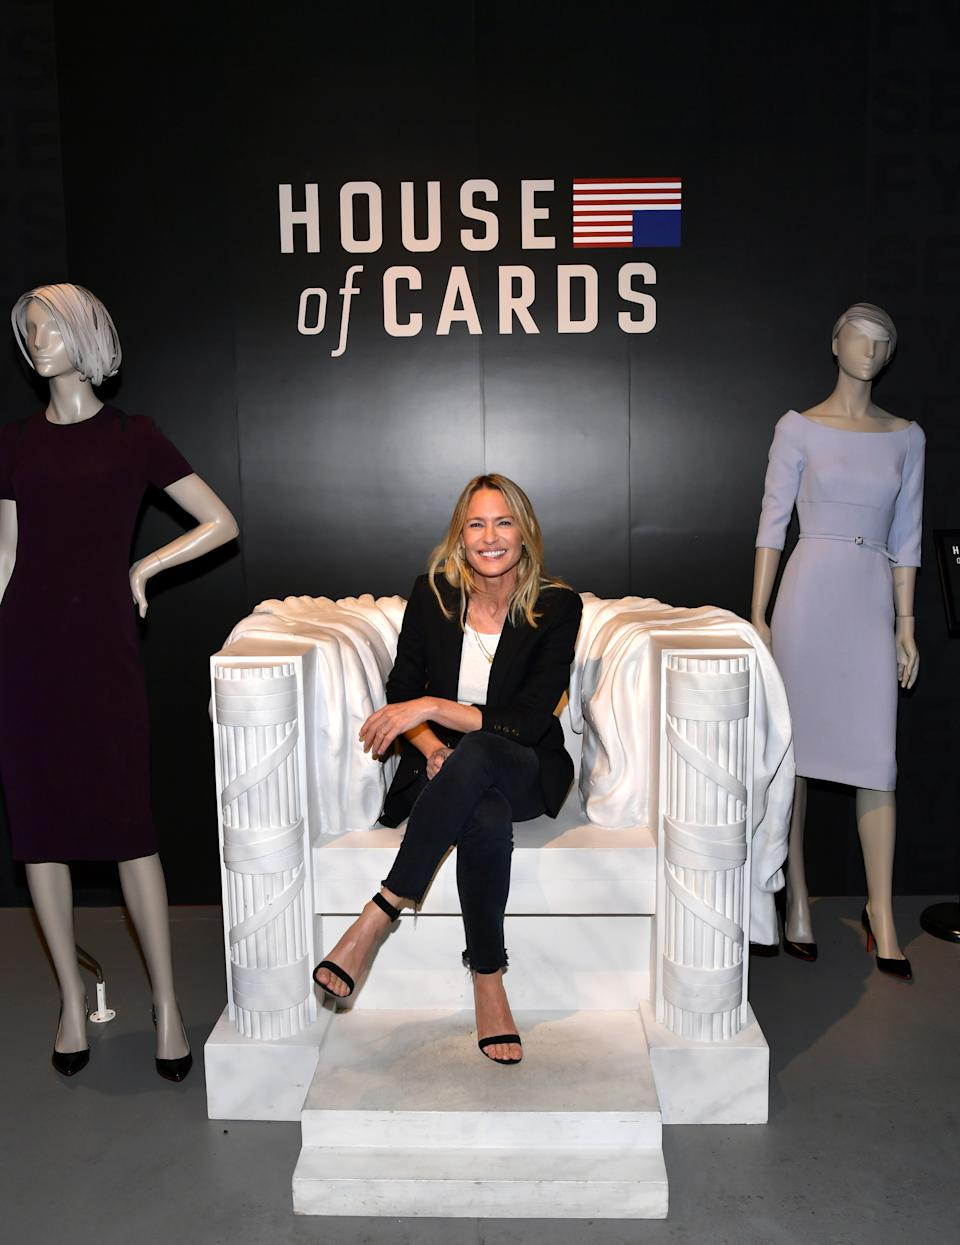 """LOS ANGELES, CALIFORNIA - JUNE 04: Robin Wright attends the Netflix """"House of Cards"""" FYSEE Event at Raleigh Studios on June 04, 2019 in Los Angeles, California. (Photo by Emma McIntyre/Getty Images for Netflix)"""